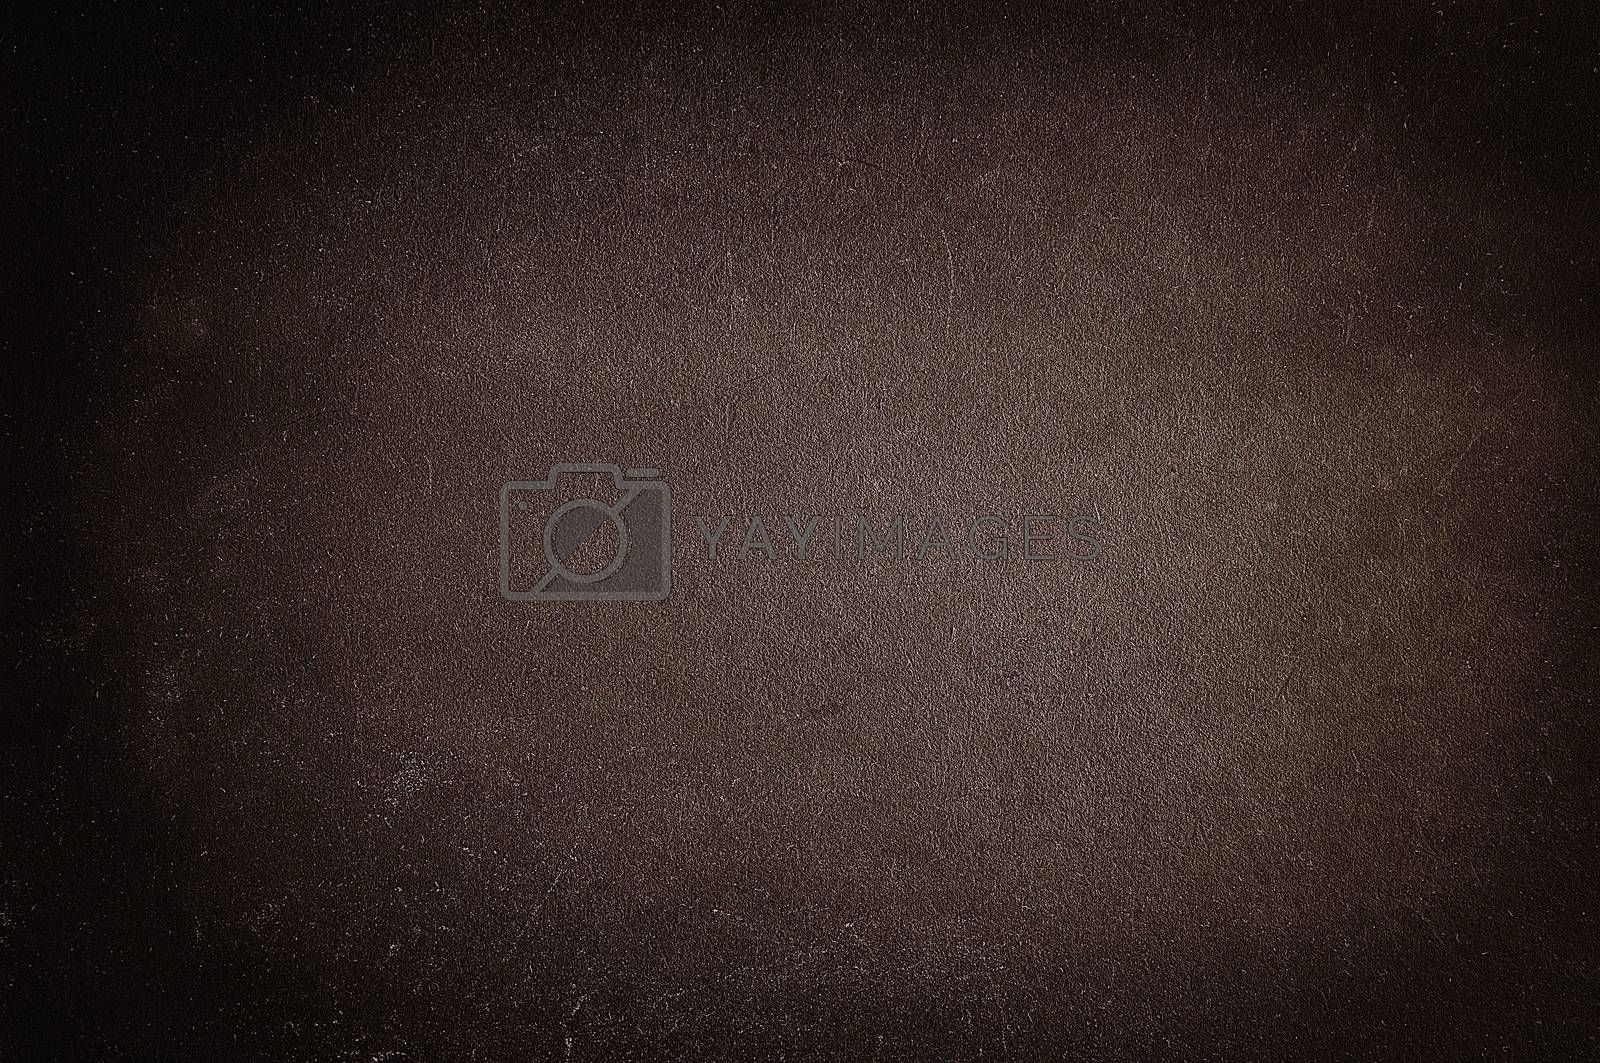 Slate brown as background and with space for writing